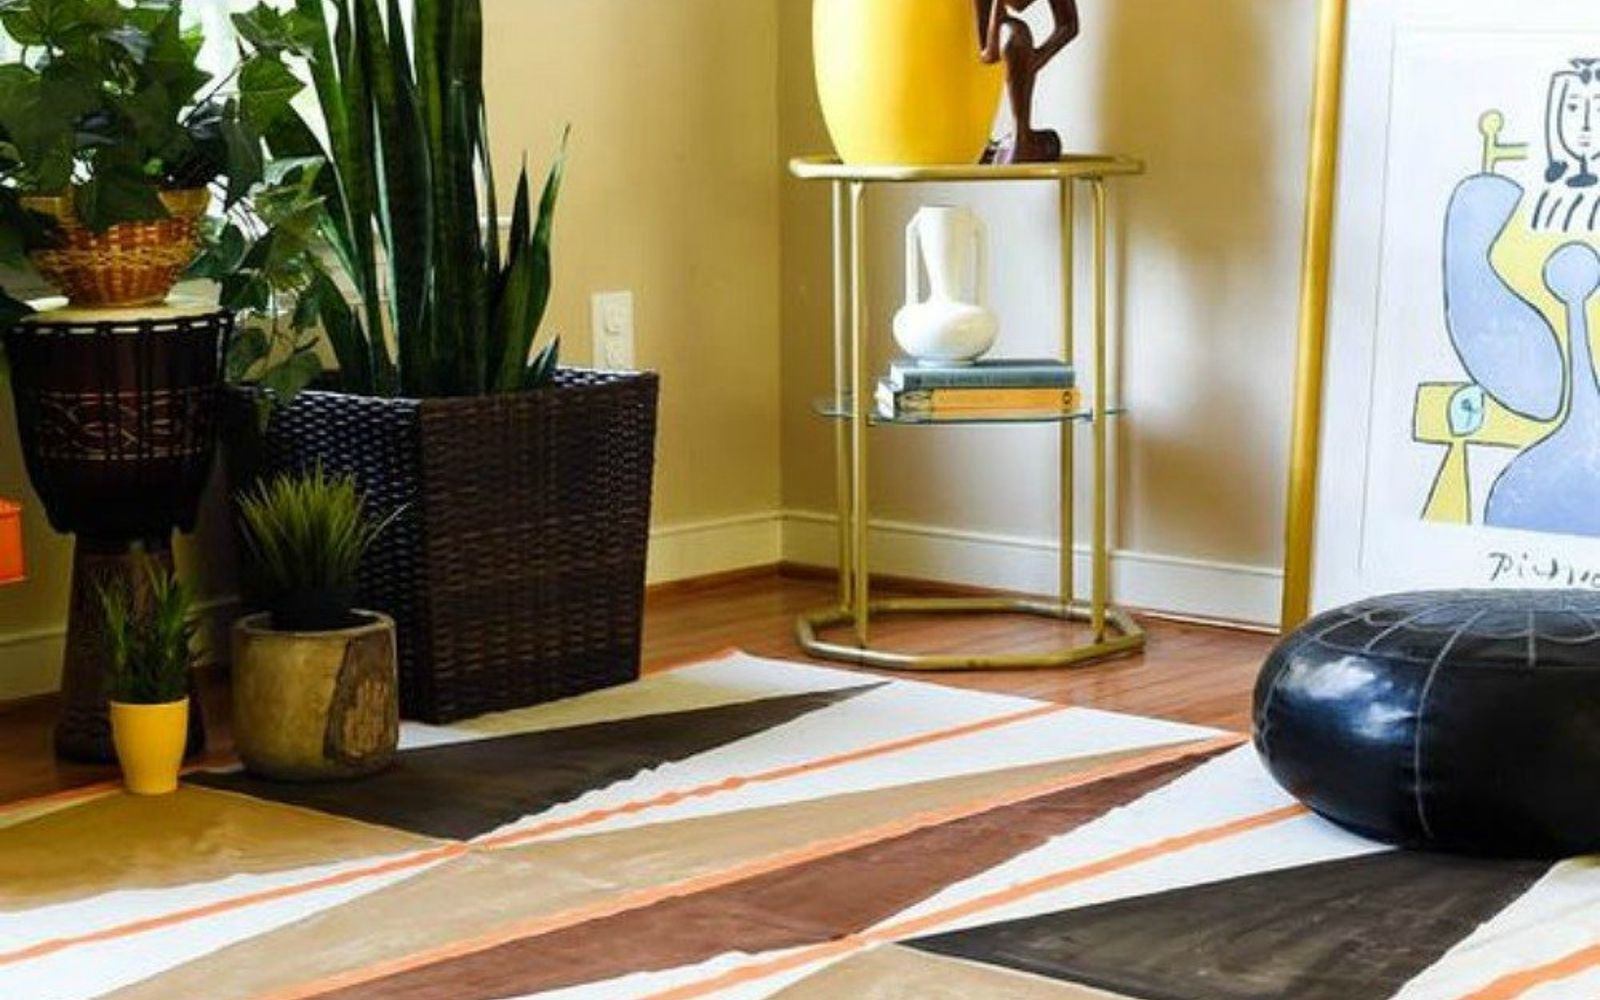 s decorate your living room for under 10 with these 15 ideas, Paint a plain area rug into something pretty